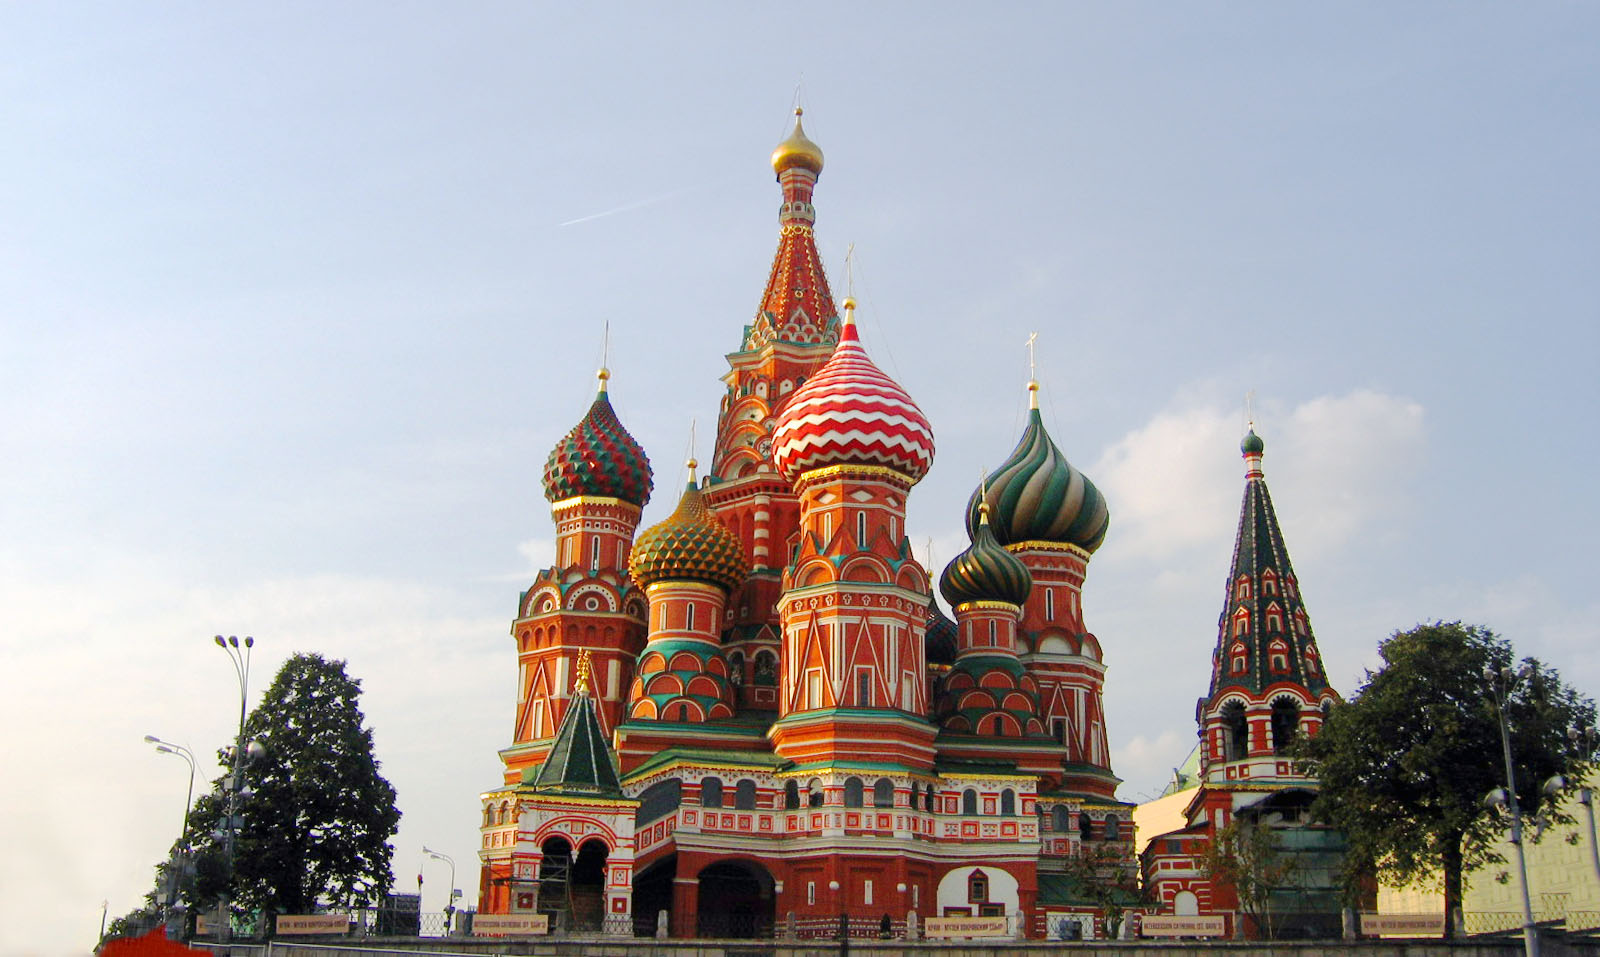 Do's and don'ts in Moscow for first time travellers. Do check out the Saint Basil's Cathedral, the famous landmark of Moscow